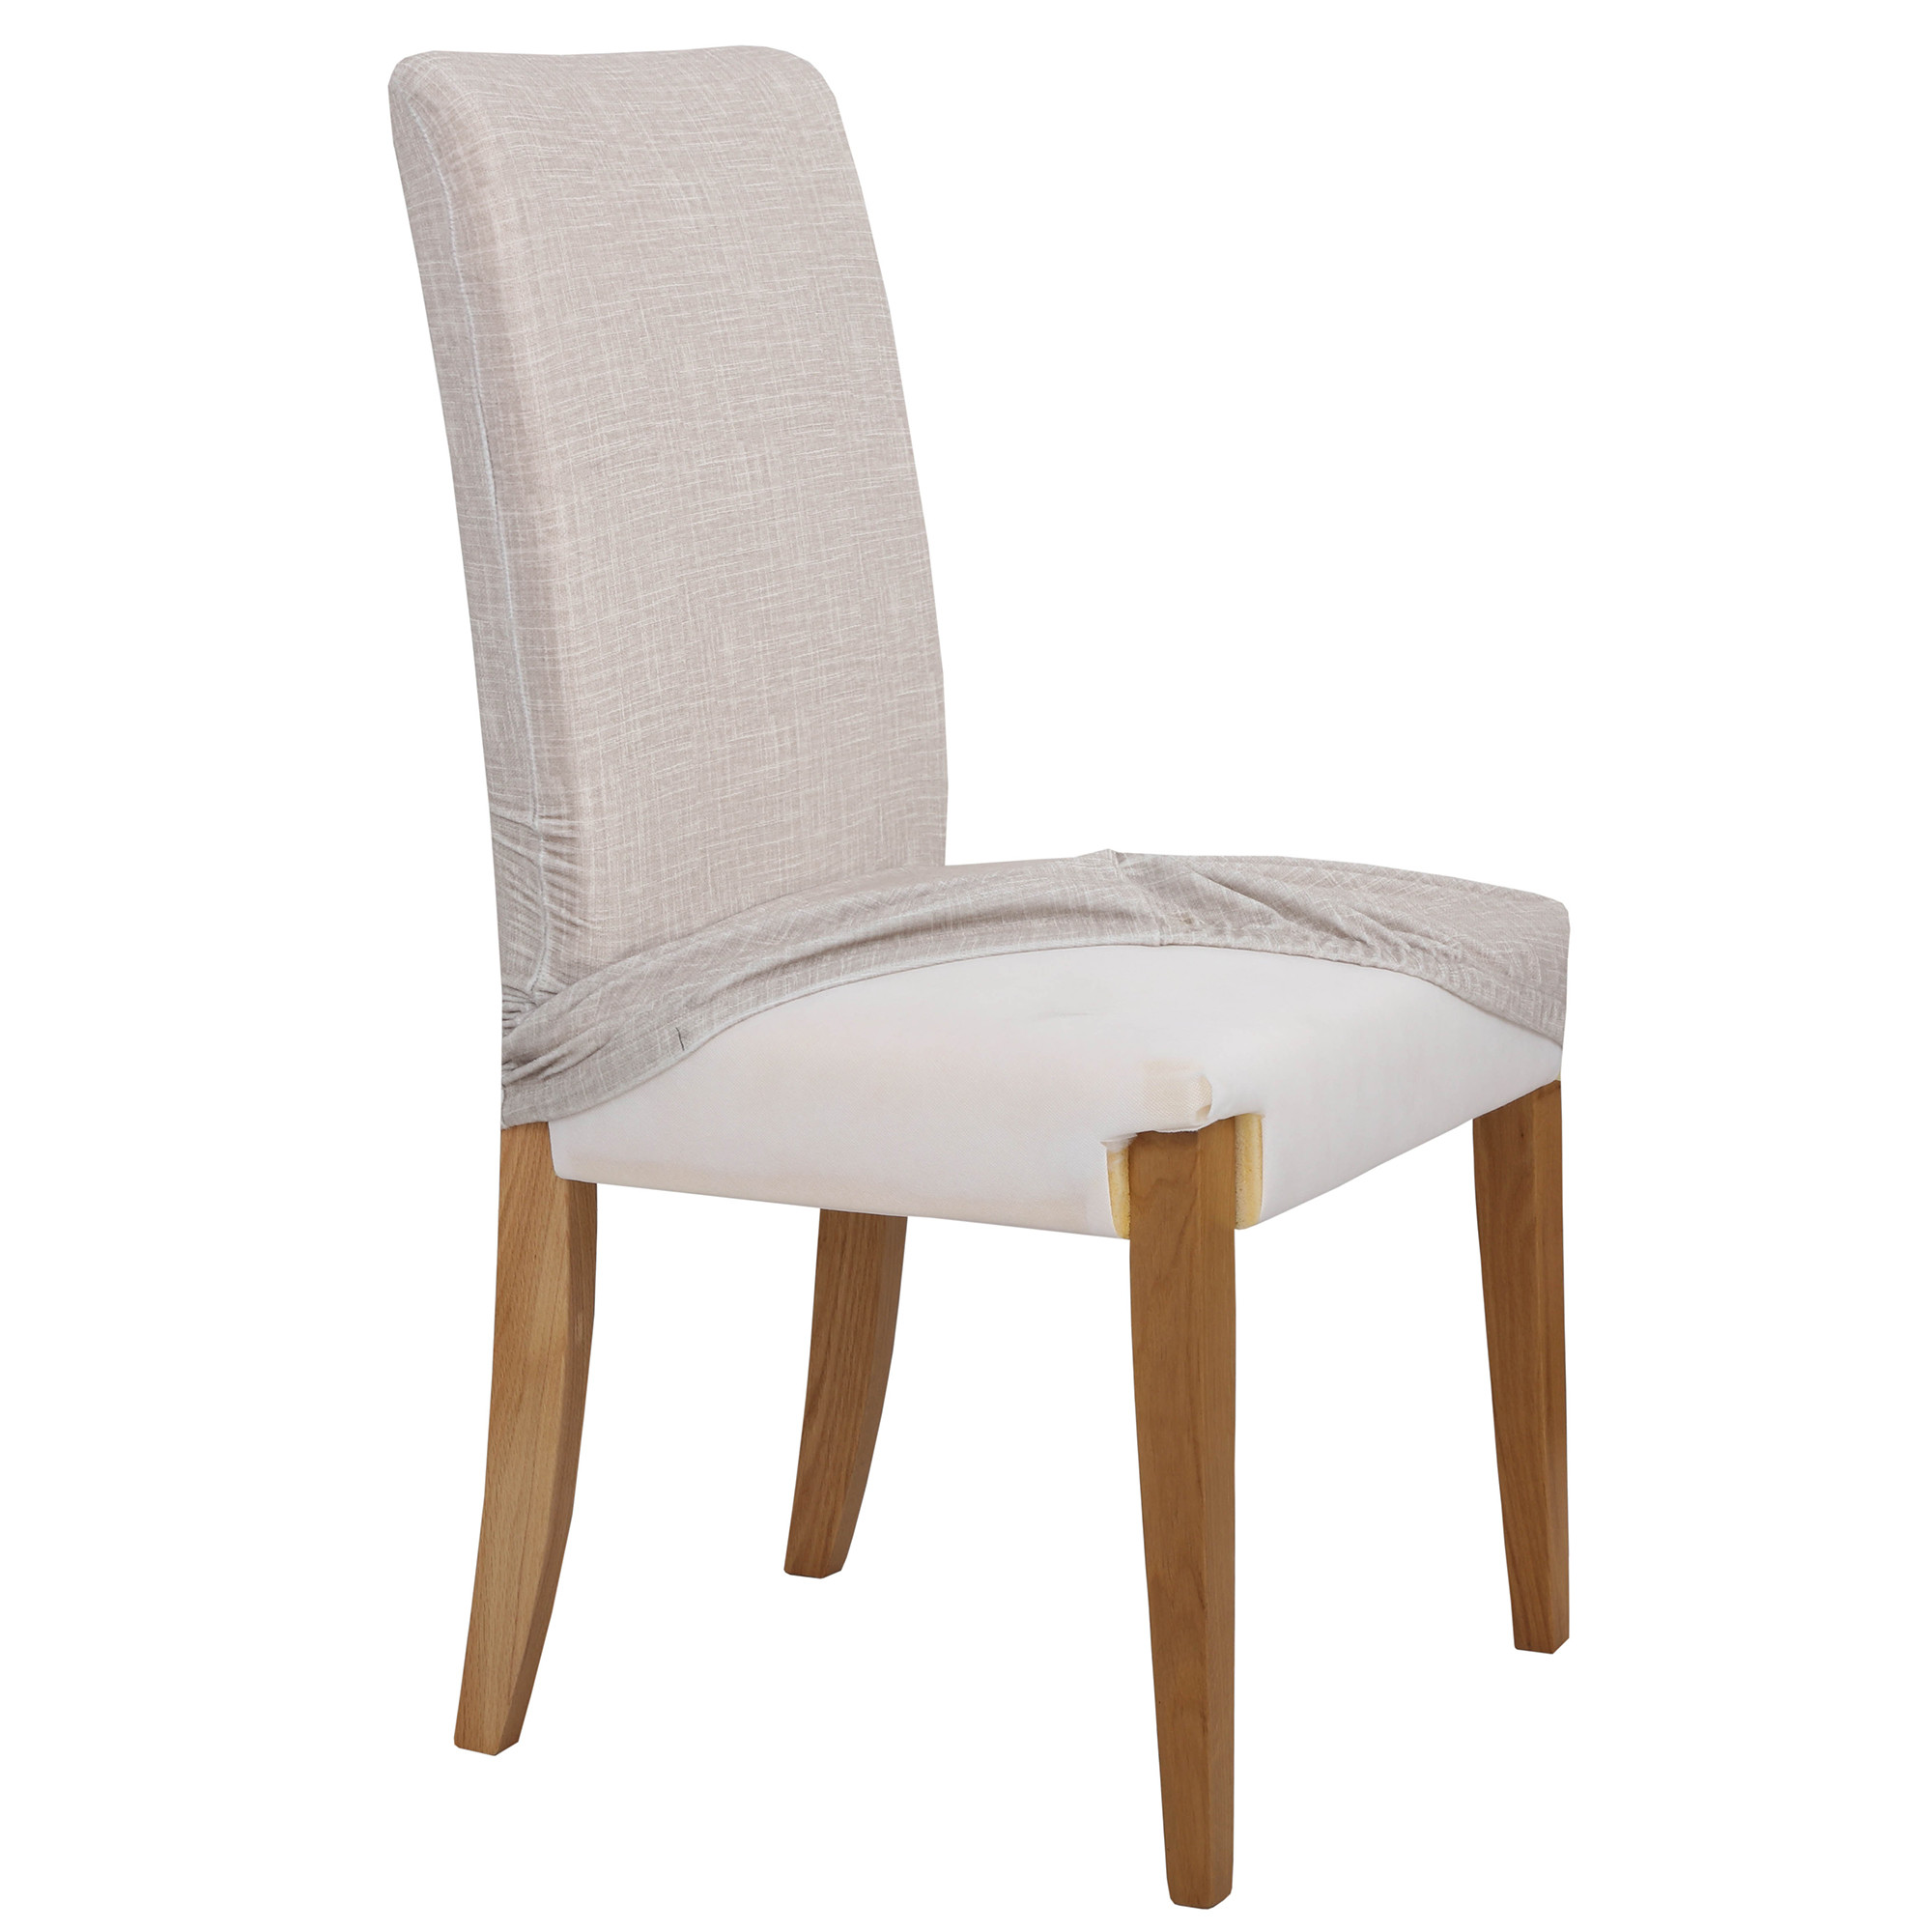 Home Innovations Sand Faux Linen Stretch Dining Room Chair Cover